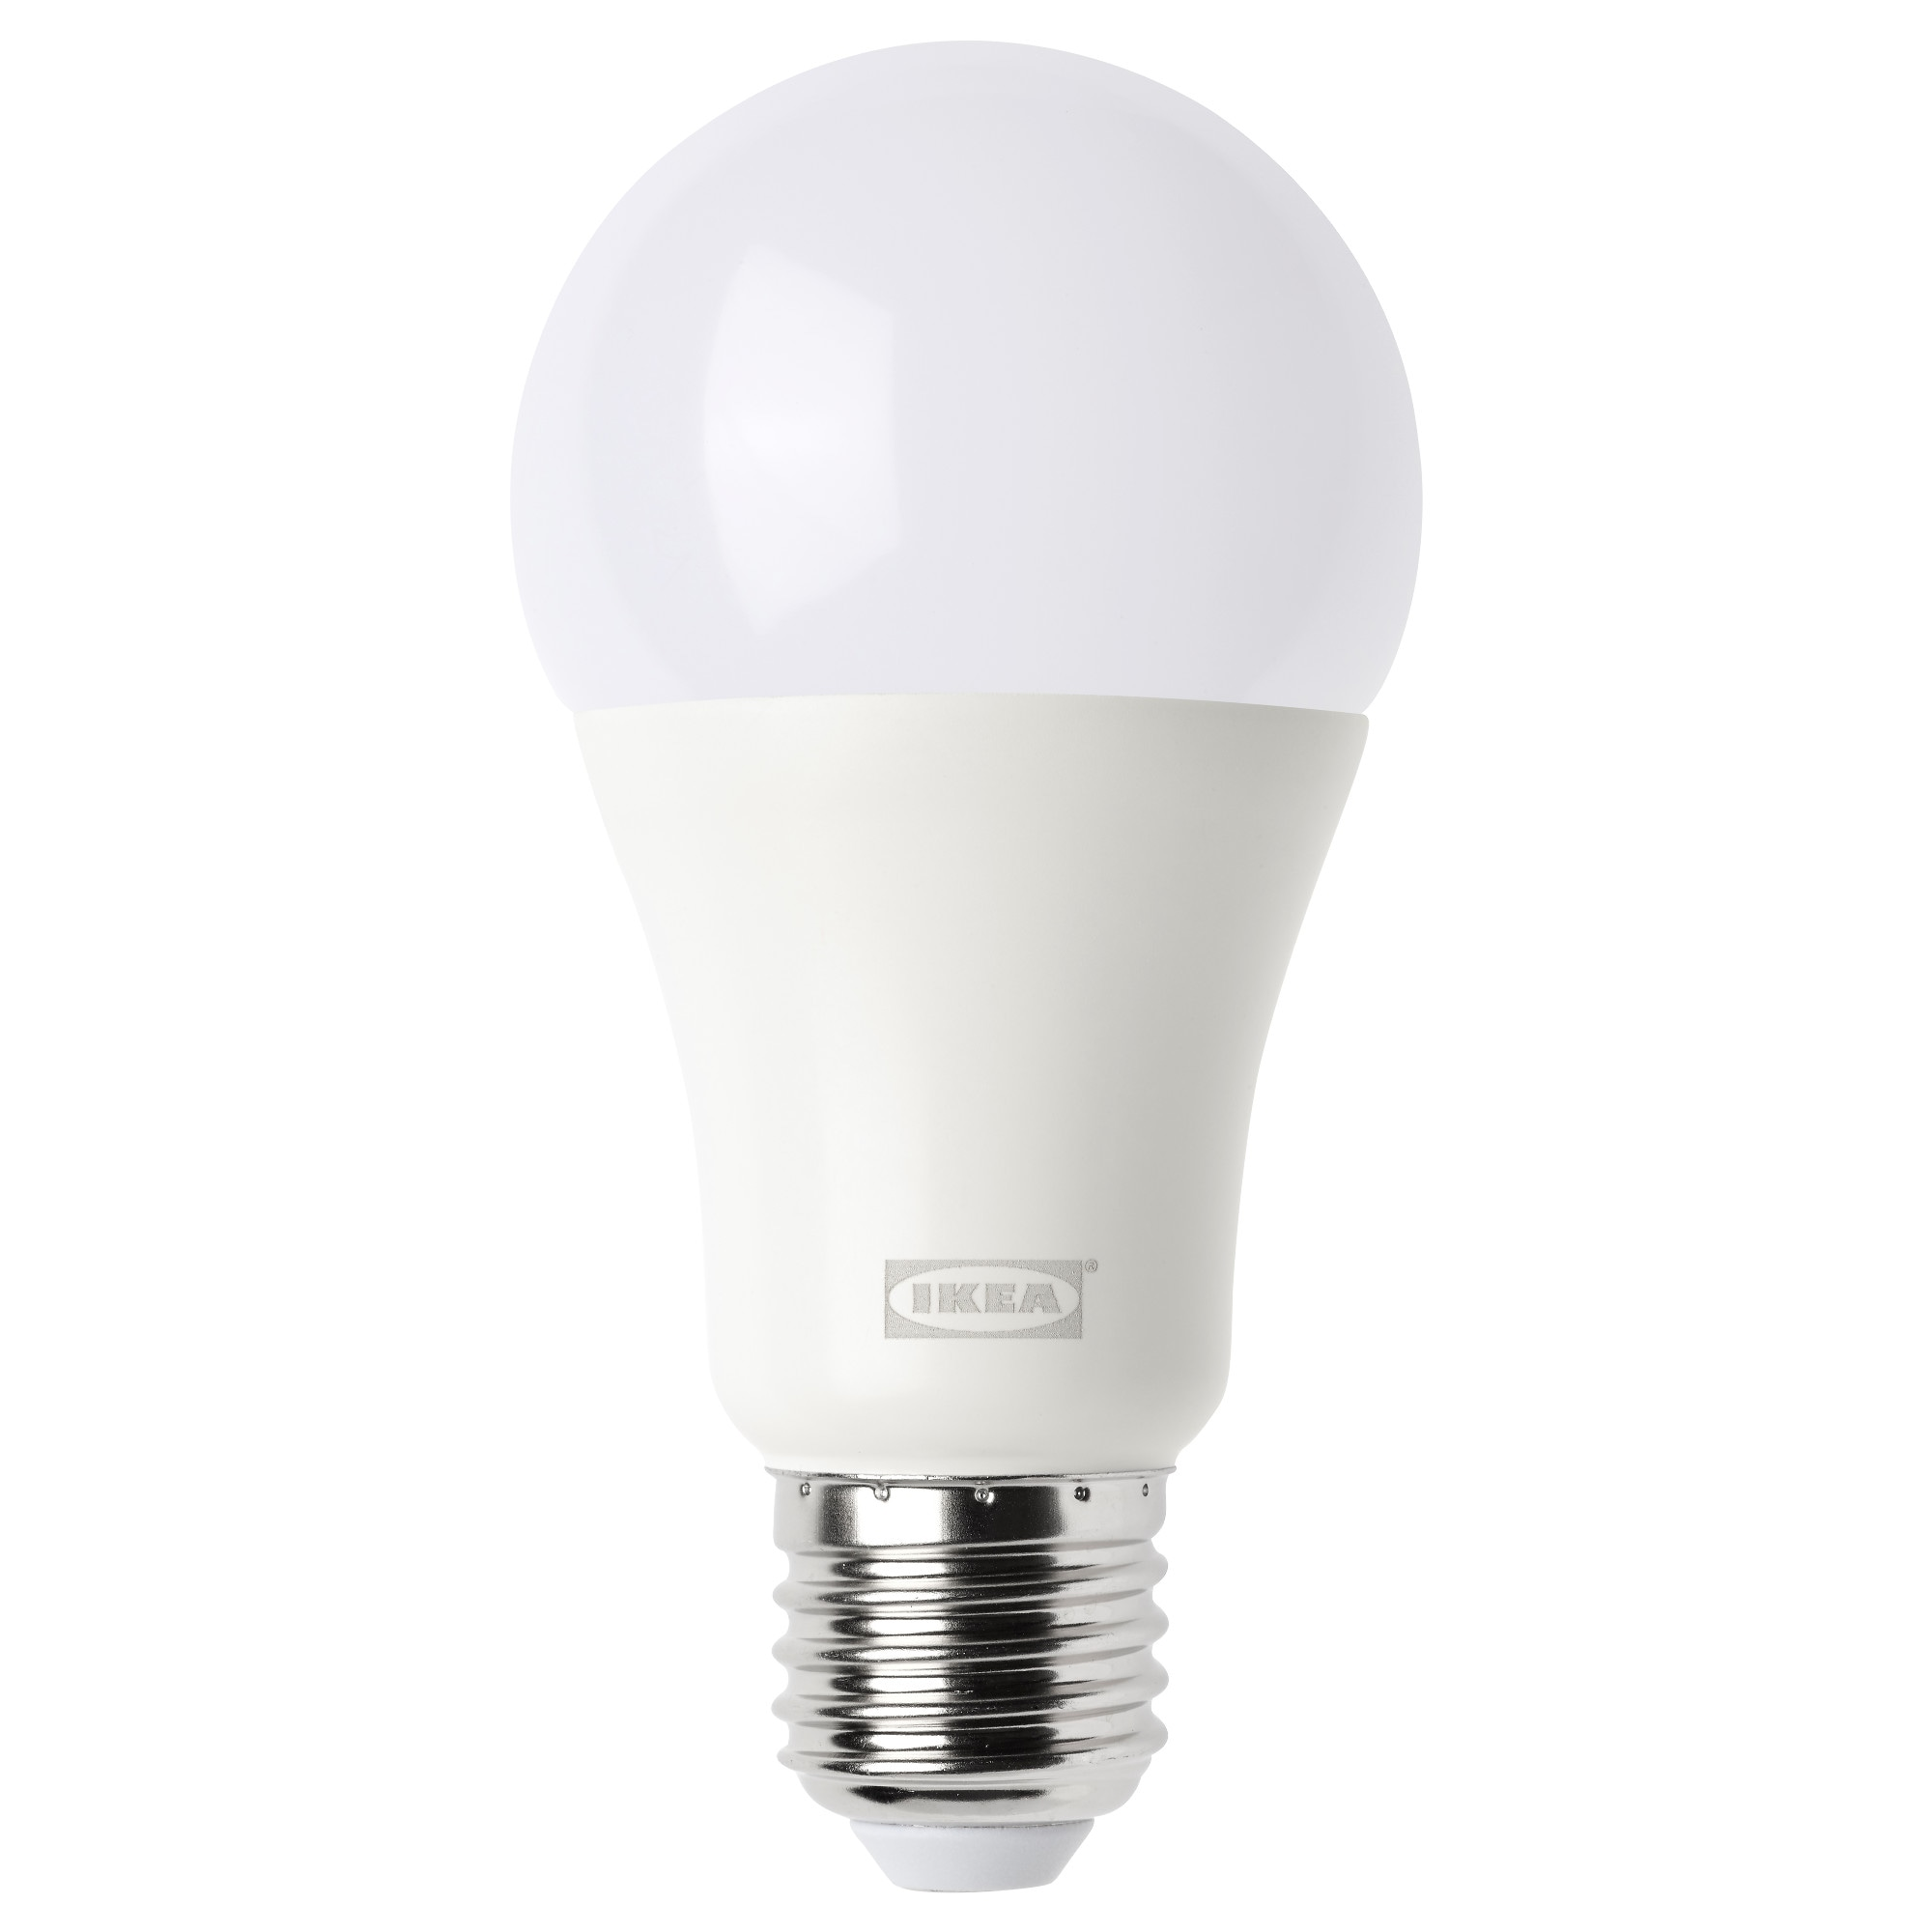 Ikea home smart beleuchtung led lampen kabellos dimmbar trdfri led lampe e27 1000 lm kabellos dimmbar rund warmes tageslicht opalwei standardlichtstrom parisarafo Choice Image